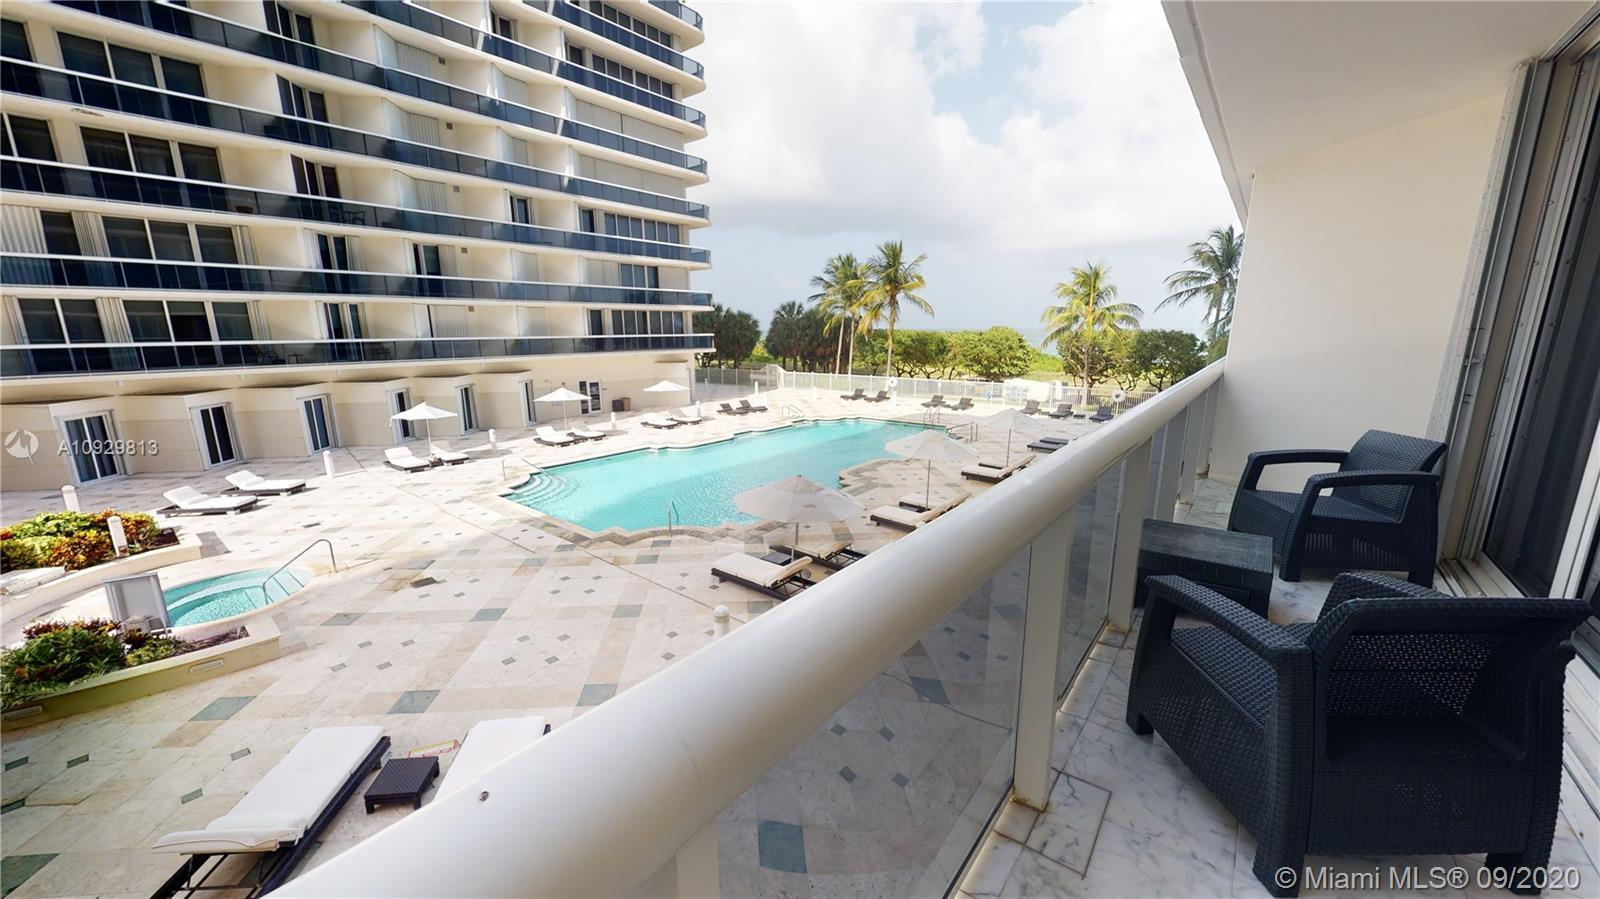 This spacious 2 bedroom 2 1/2 bath unit with 10 ft ceilings at Solimar Condominium in Surfside is th